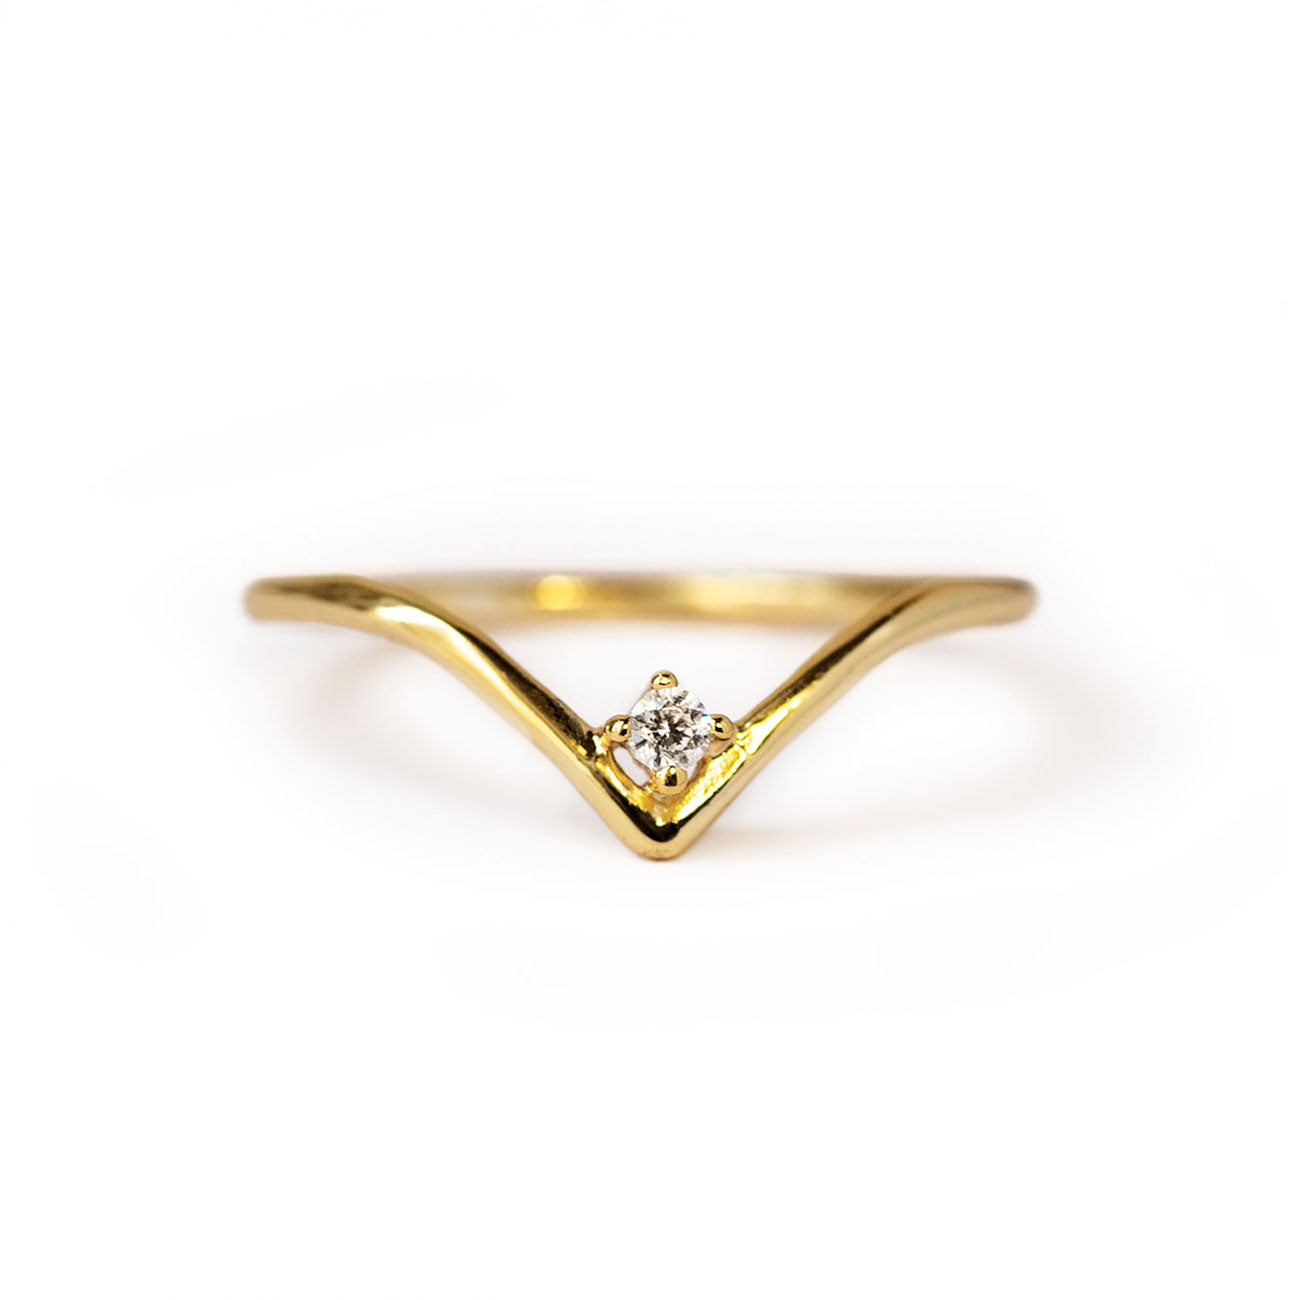 Gold Chevron Ring with Cubic Zirconia Stone